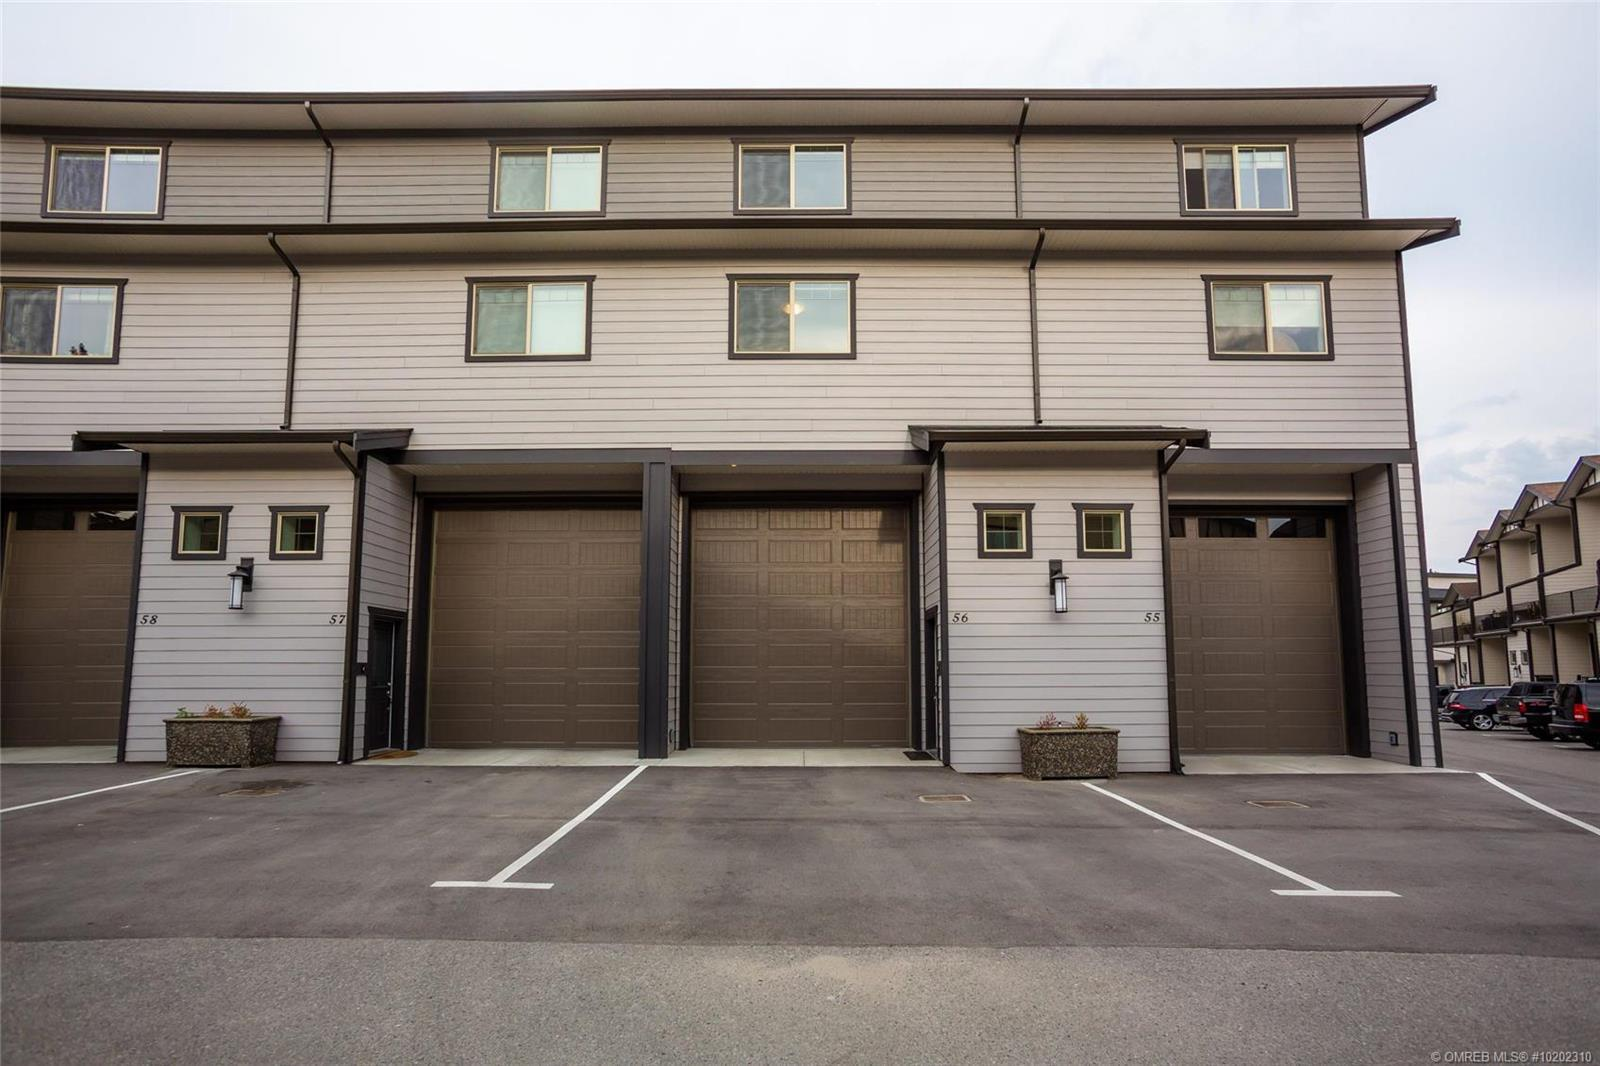 Removed: 56 - 3359 Cougar Road, West Kelowna, BC - Removed on 2020-05-16 00:09:17